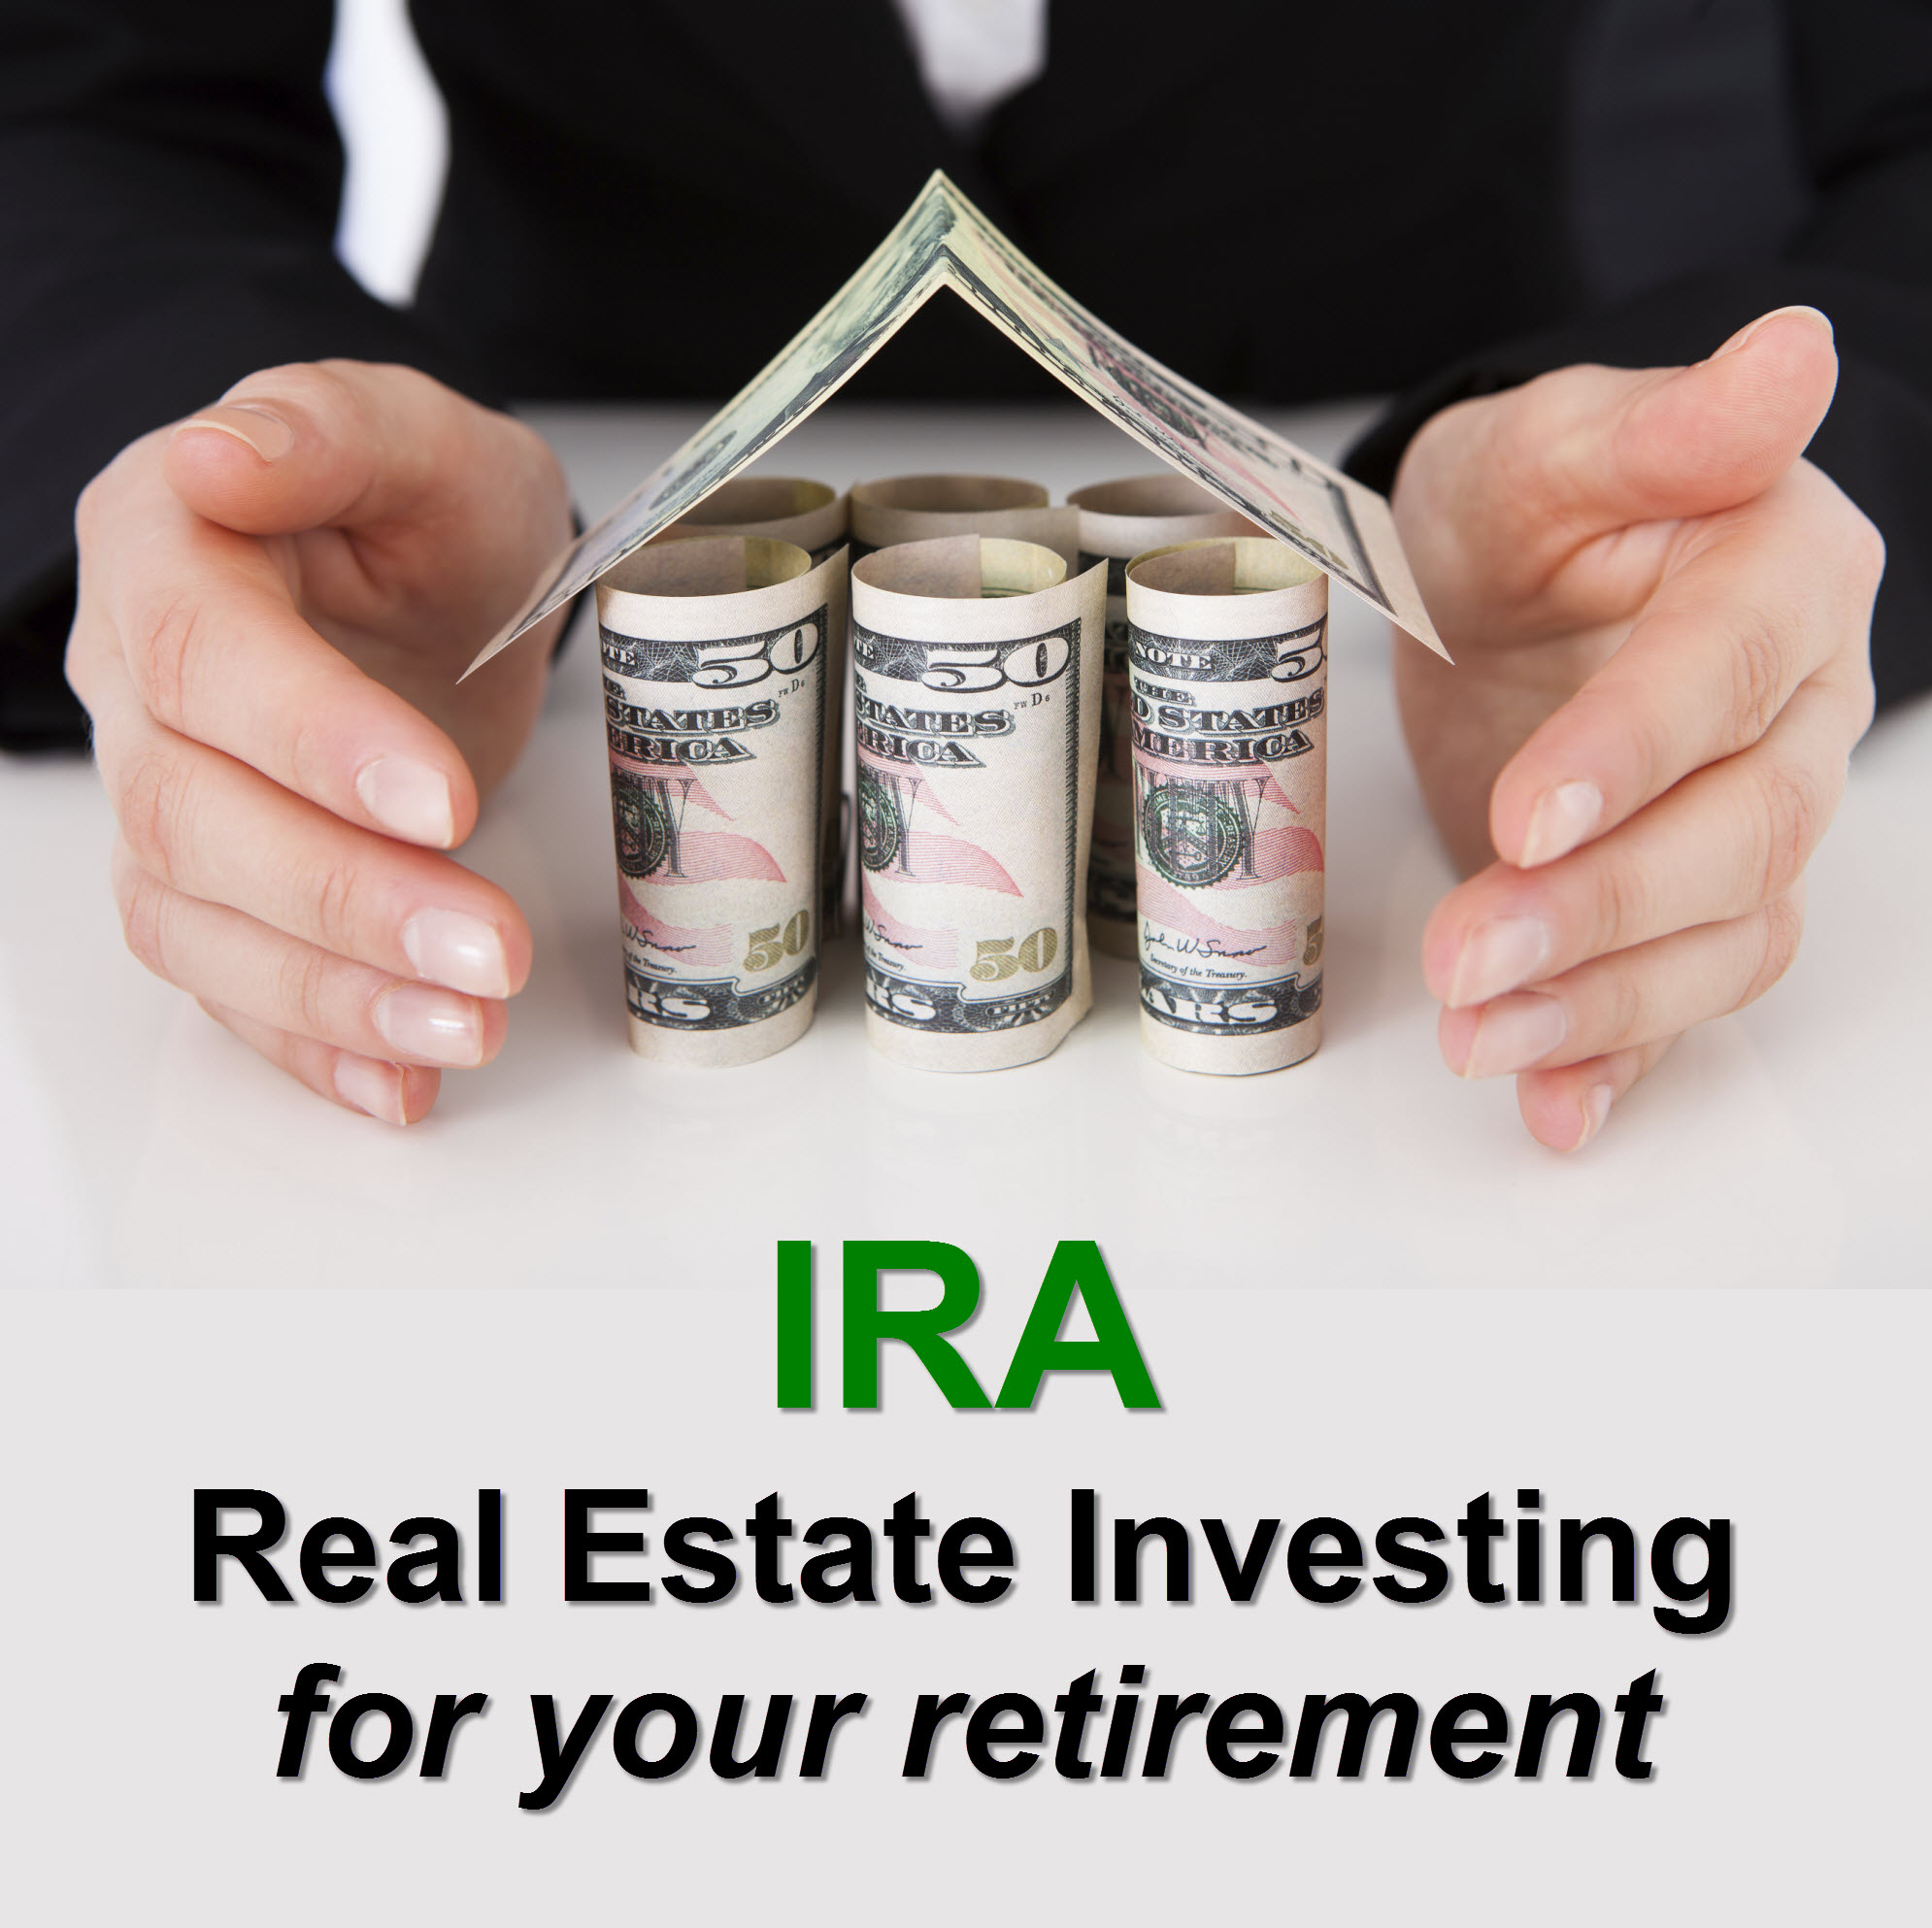 Ira real estate investment options